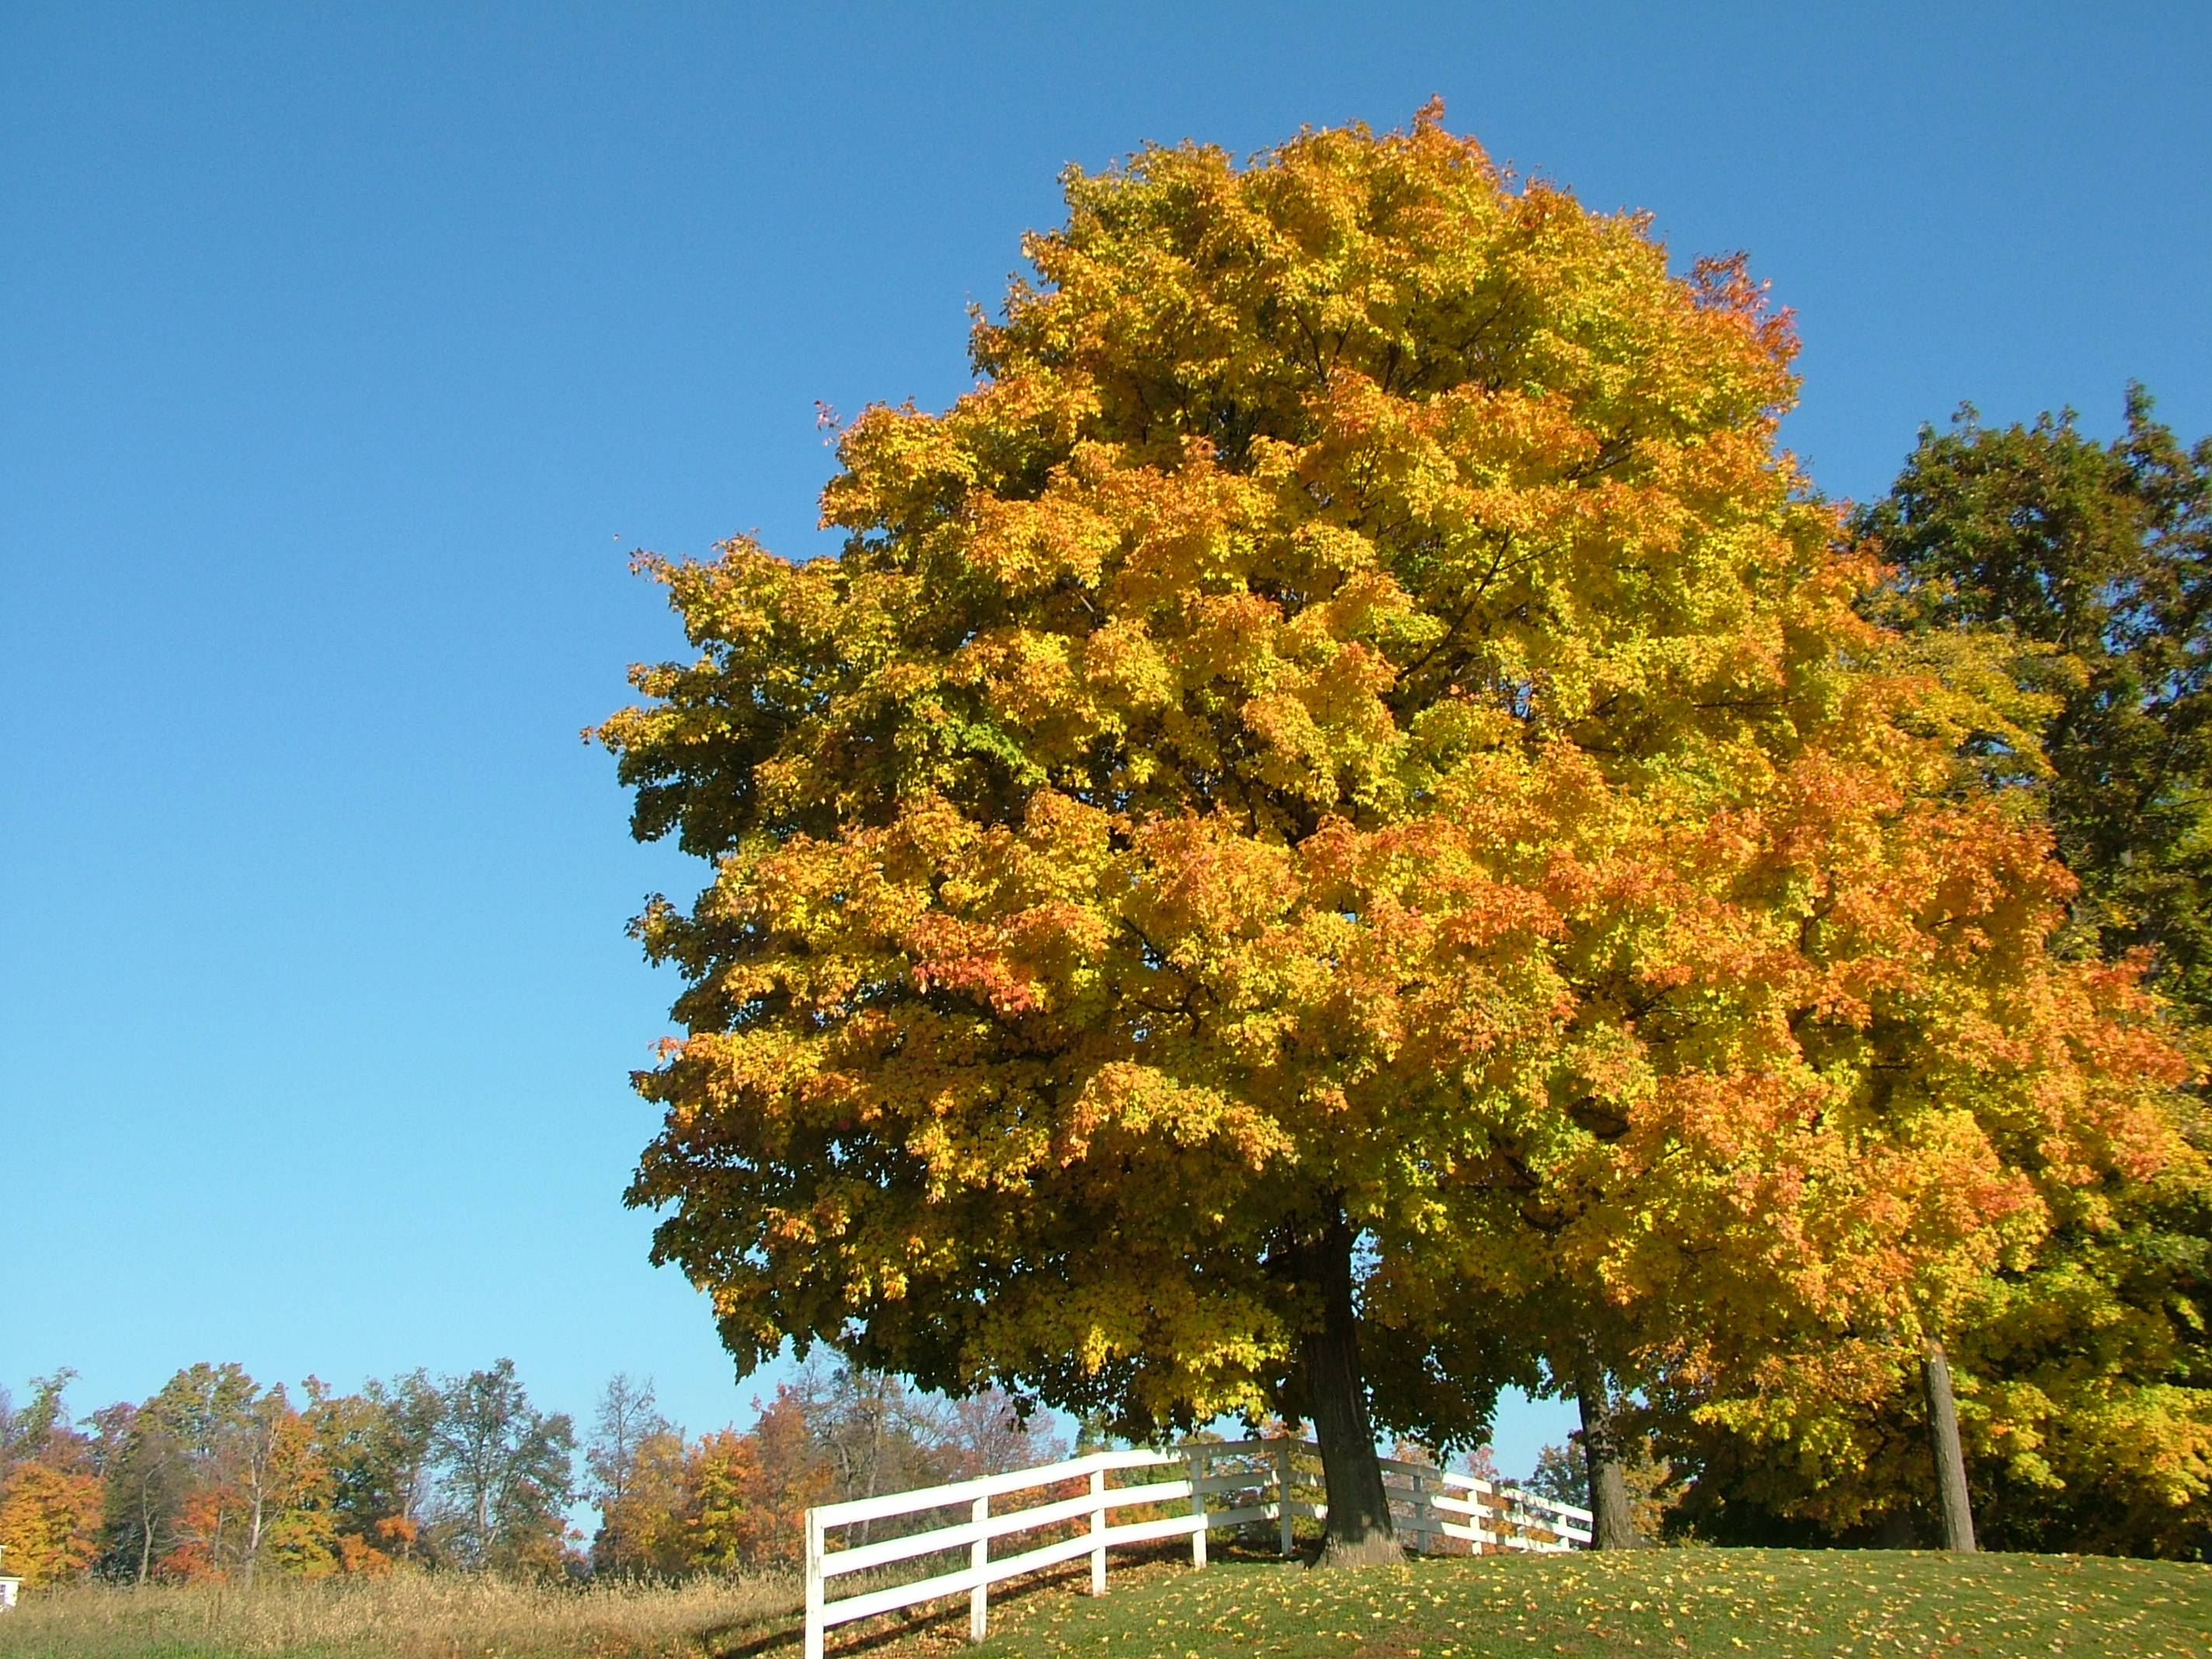 The Sugar maple is the quintessential tree for fall color.